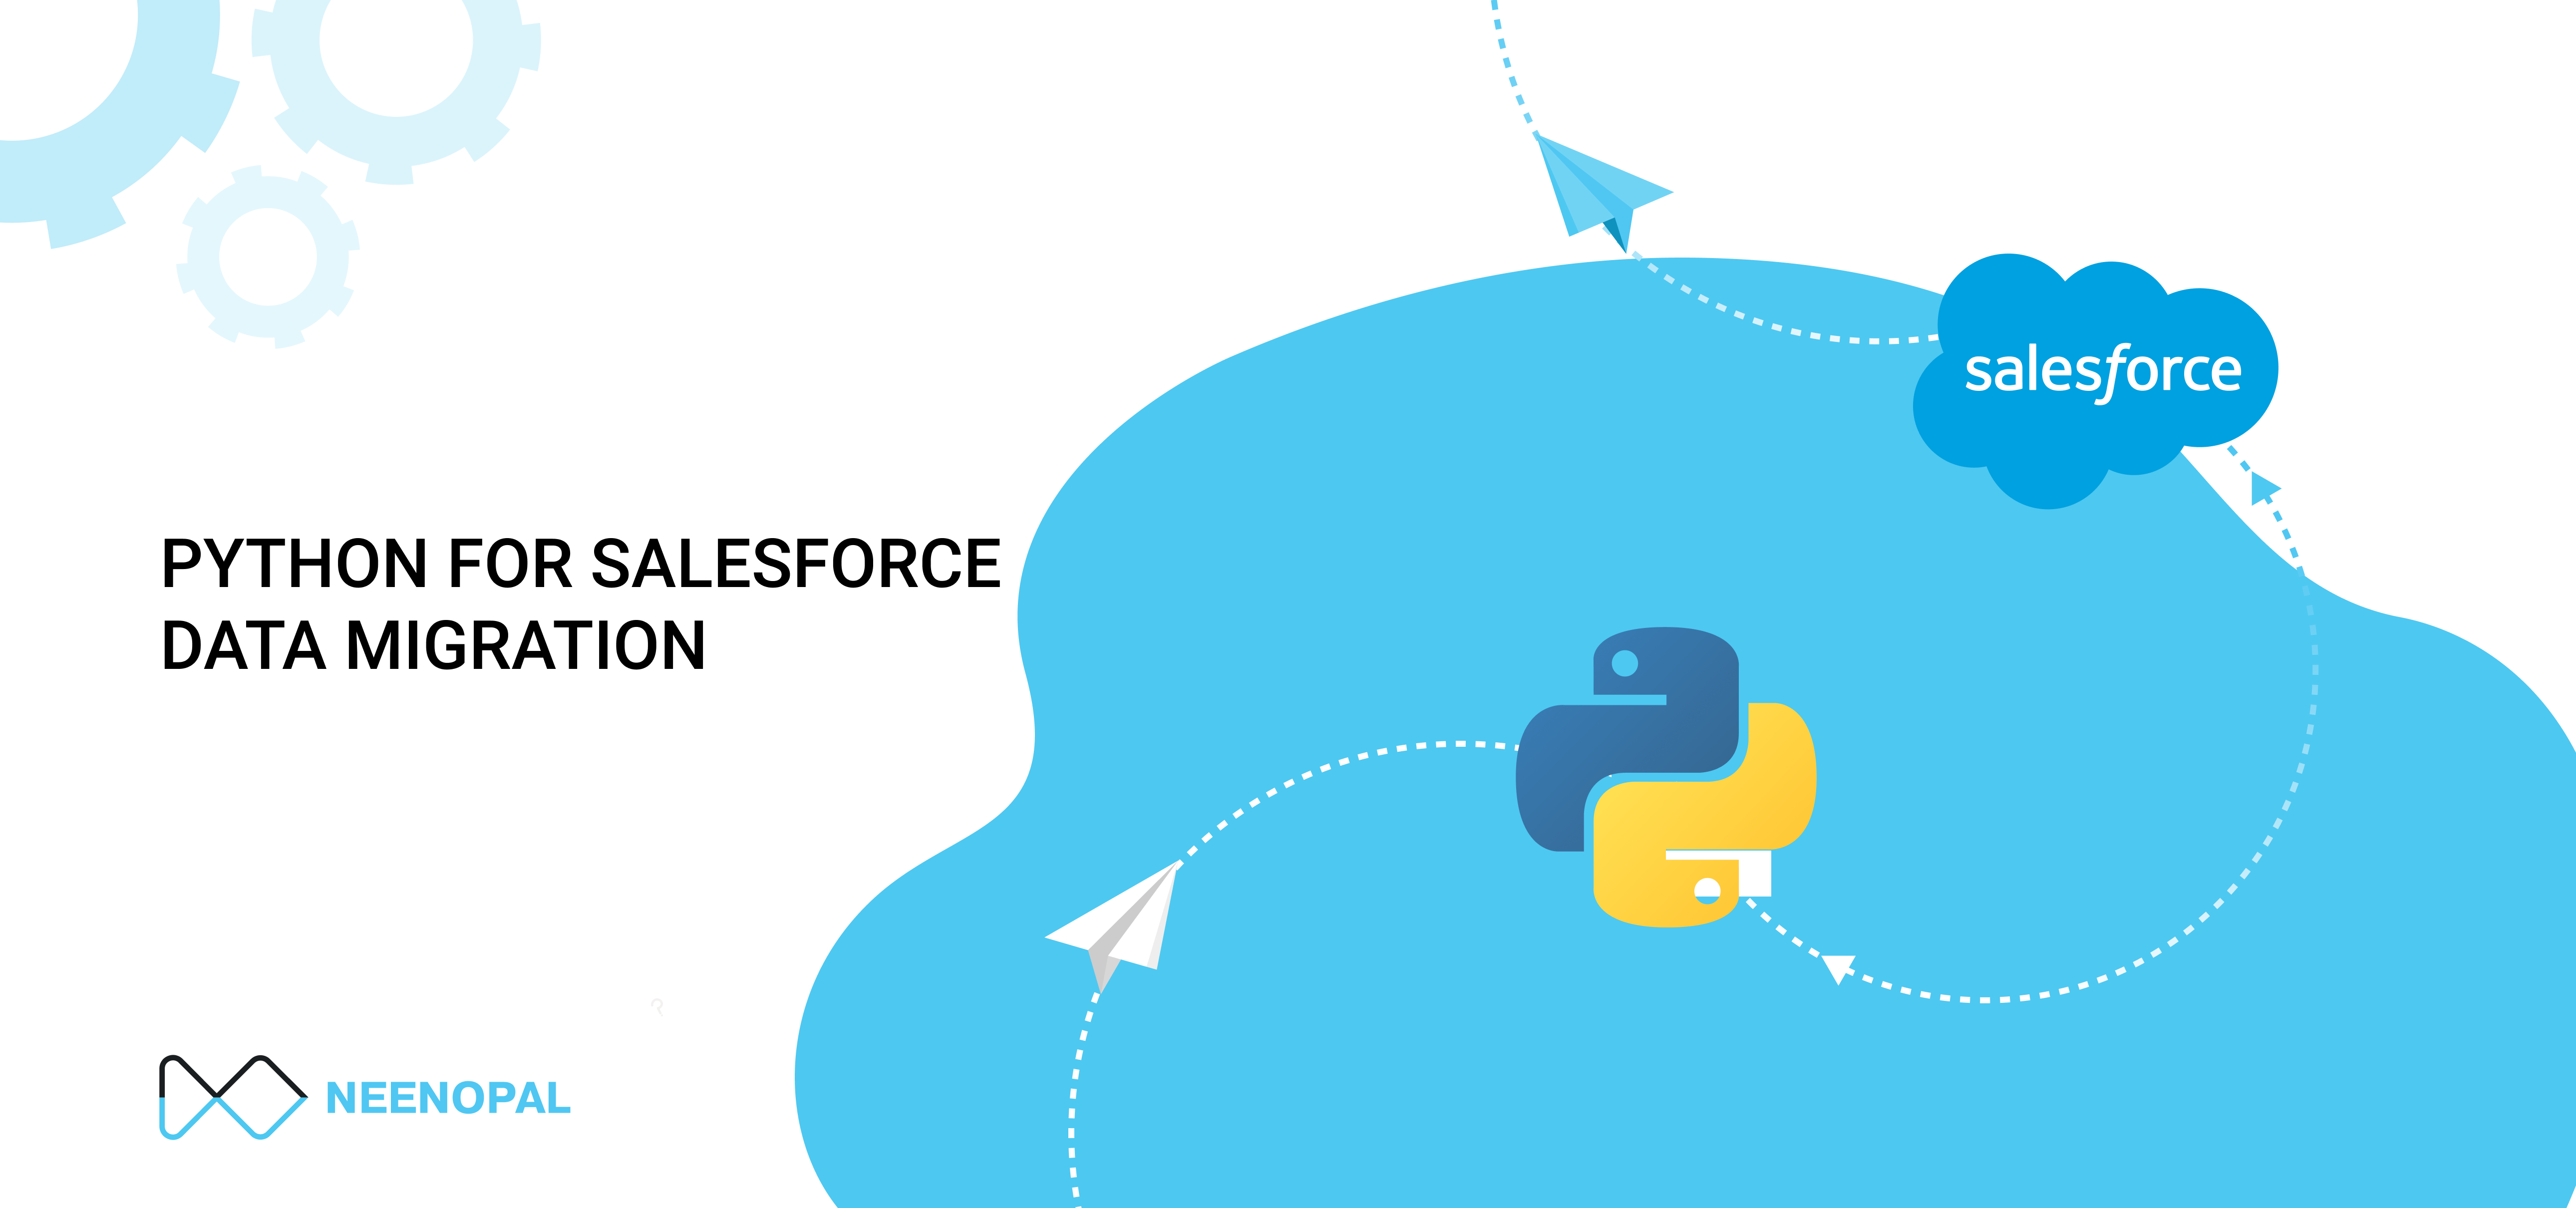 How-To-Use-Python-Libraries-To-Migrate-The-Data-From-One-Salesforce-Org-To-Another-Salesforce-Org